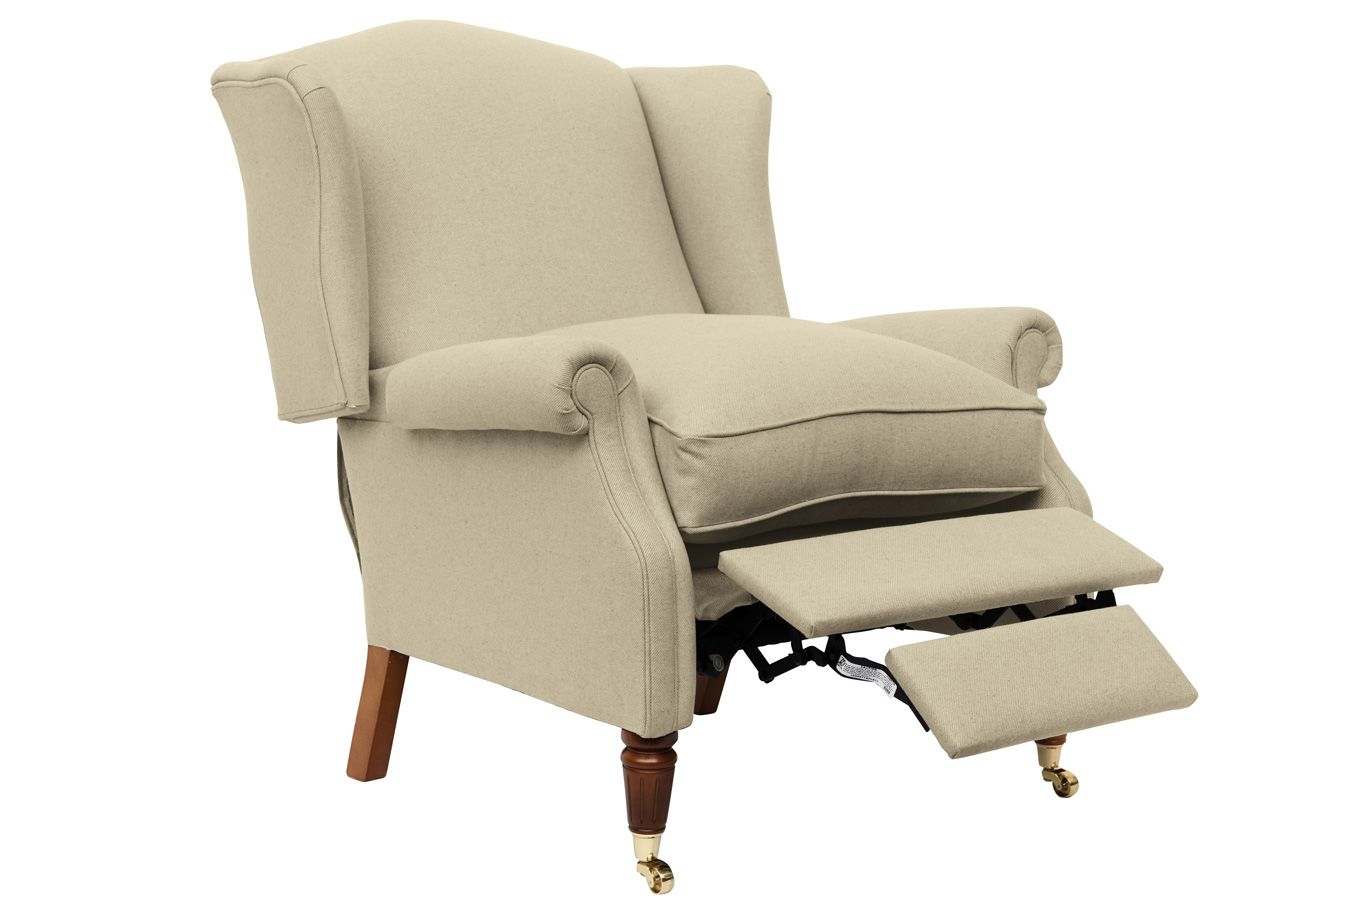 Upholstered Chair Styles Guide | Southwold Upholstered Recliner  sc 1 st  Pinterest : upholstered reclining chairs - islam-shia.org